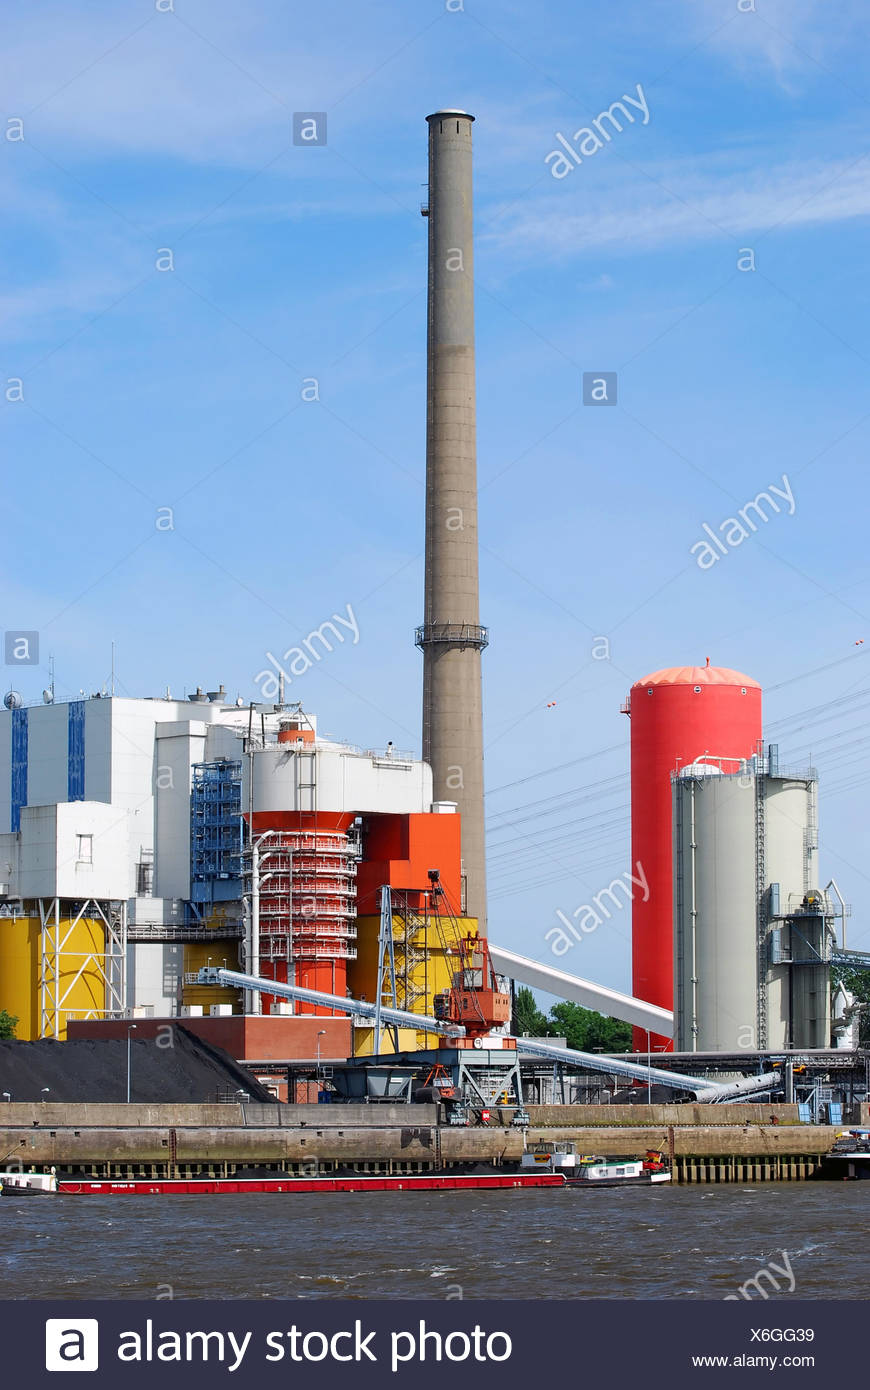 Power plant - Coal-fired power plant - Stock Image